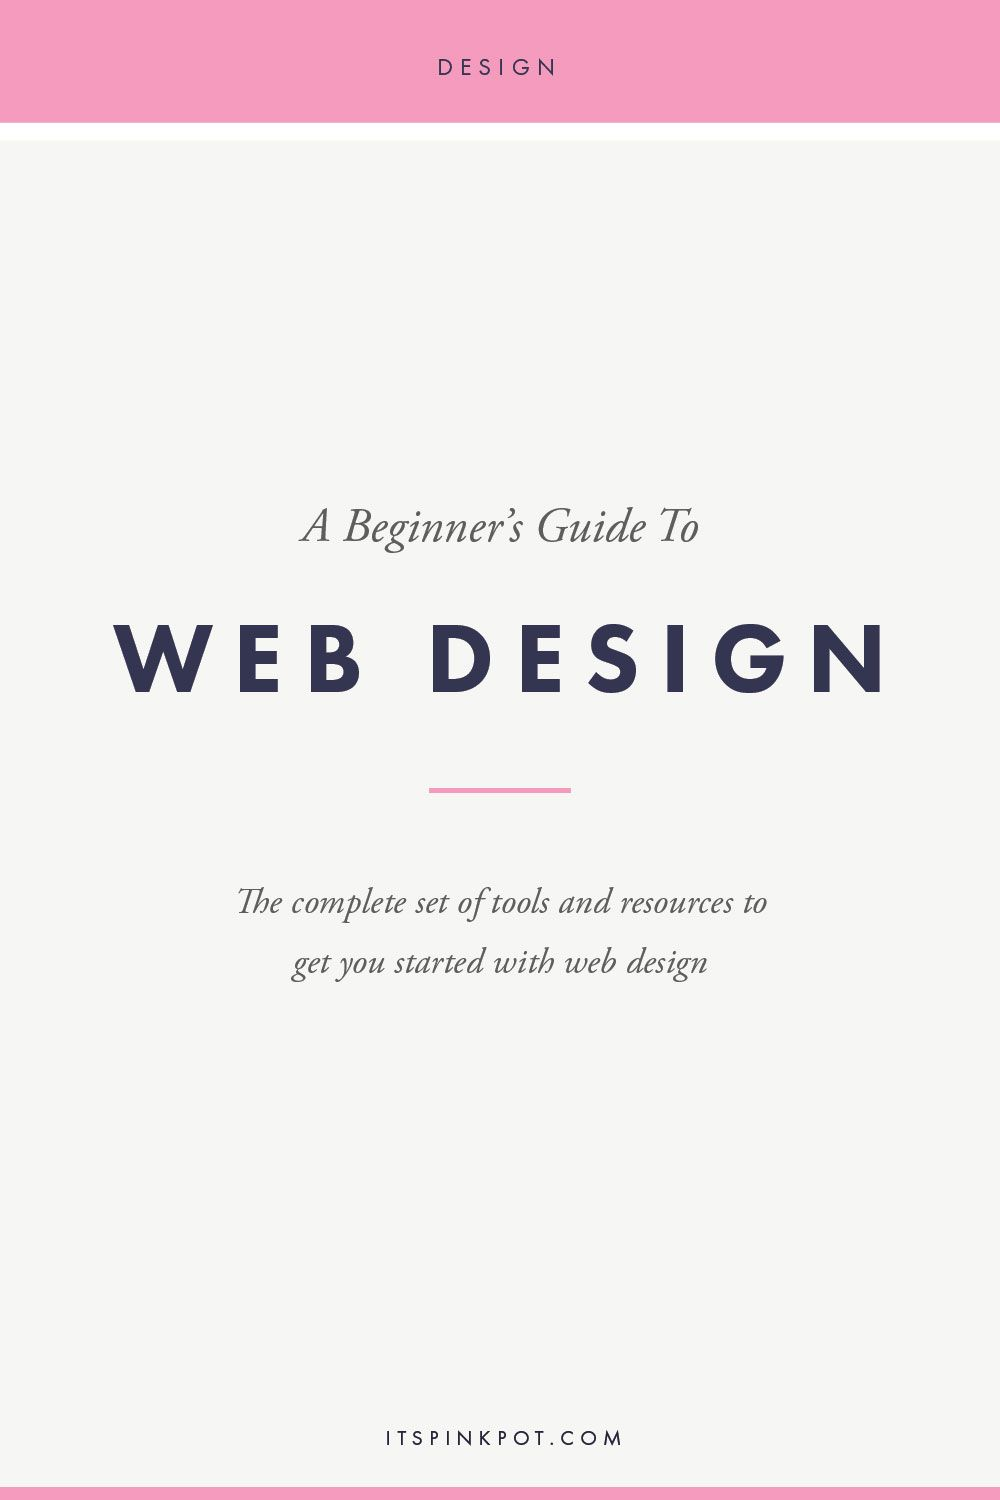 How to get started with Web Design : Tools and Resources